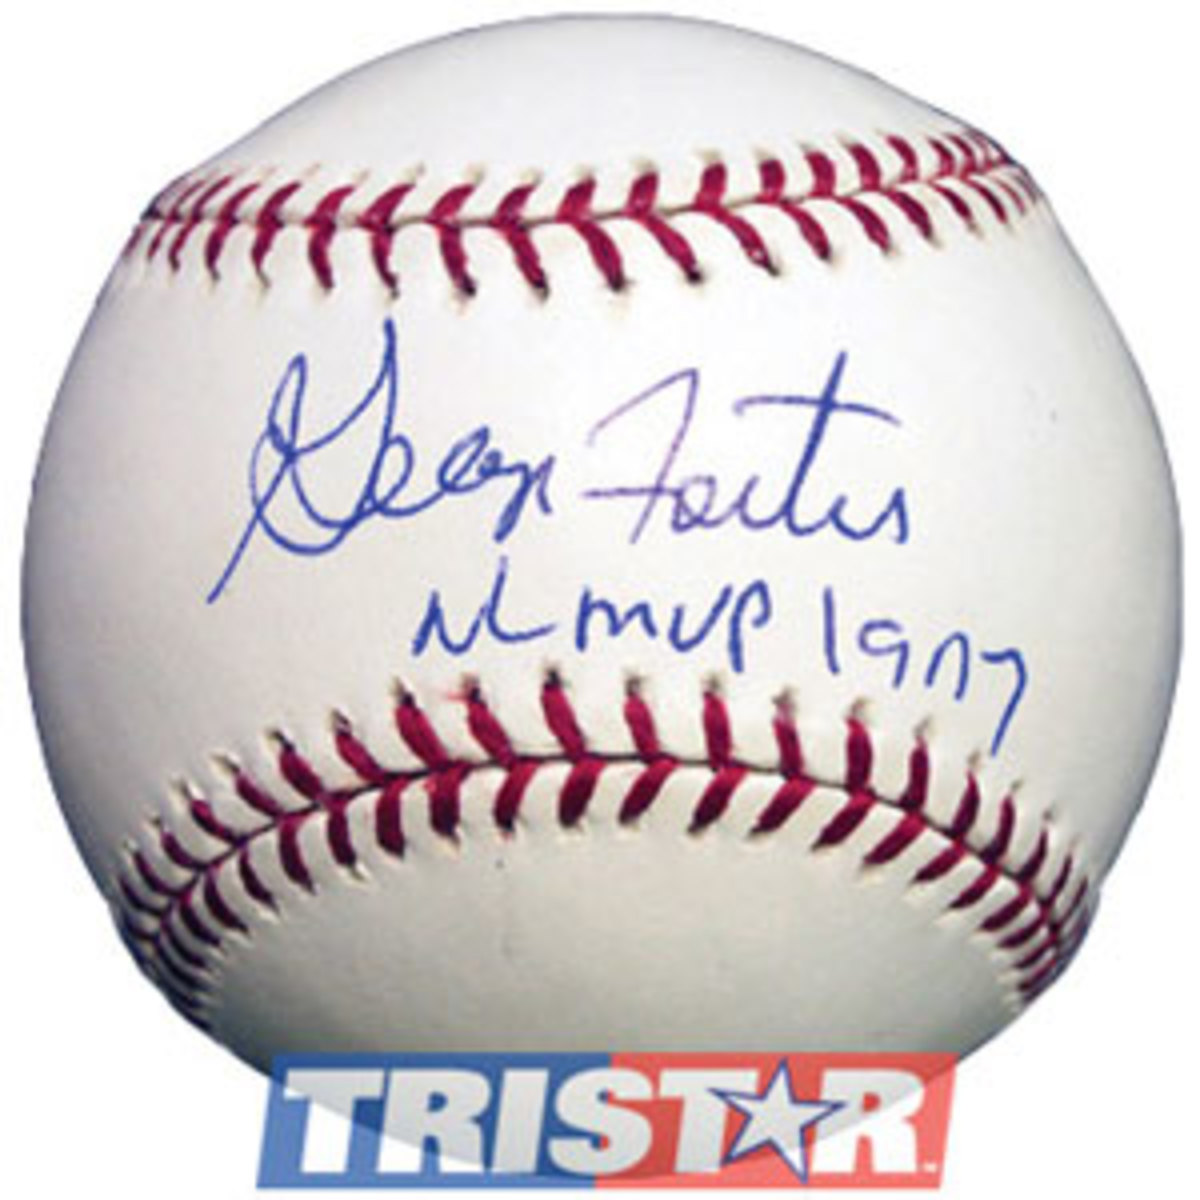 Foster signed ball noting 1977 NL MVP honor.